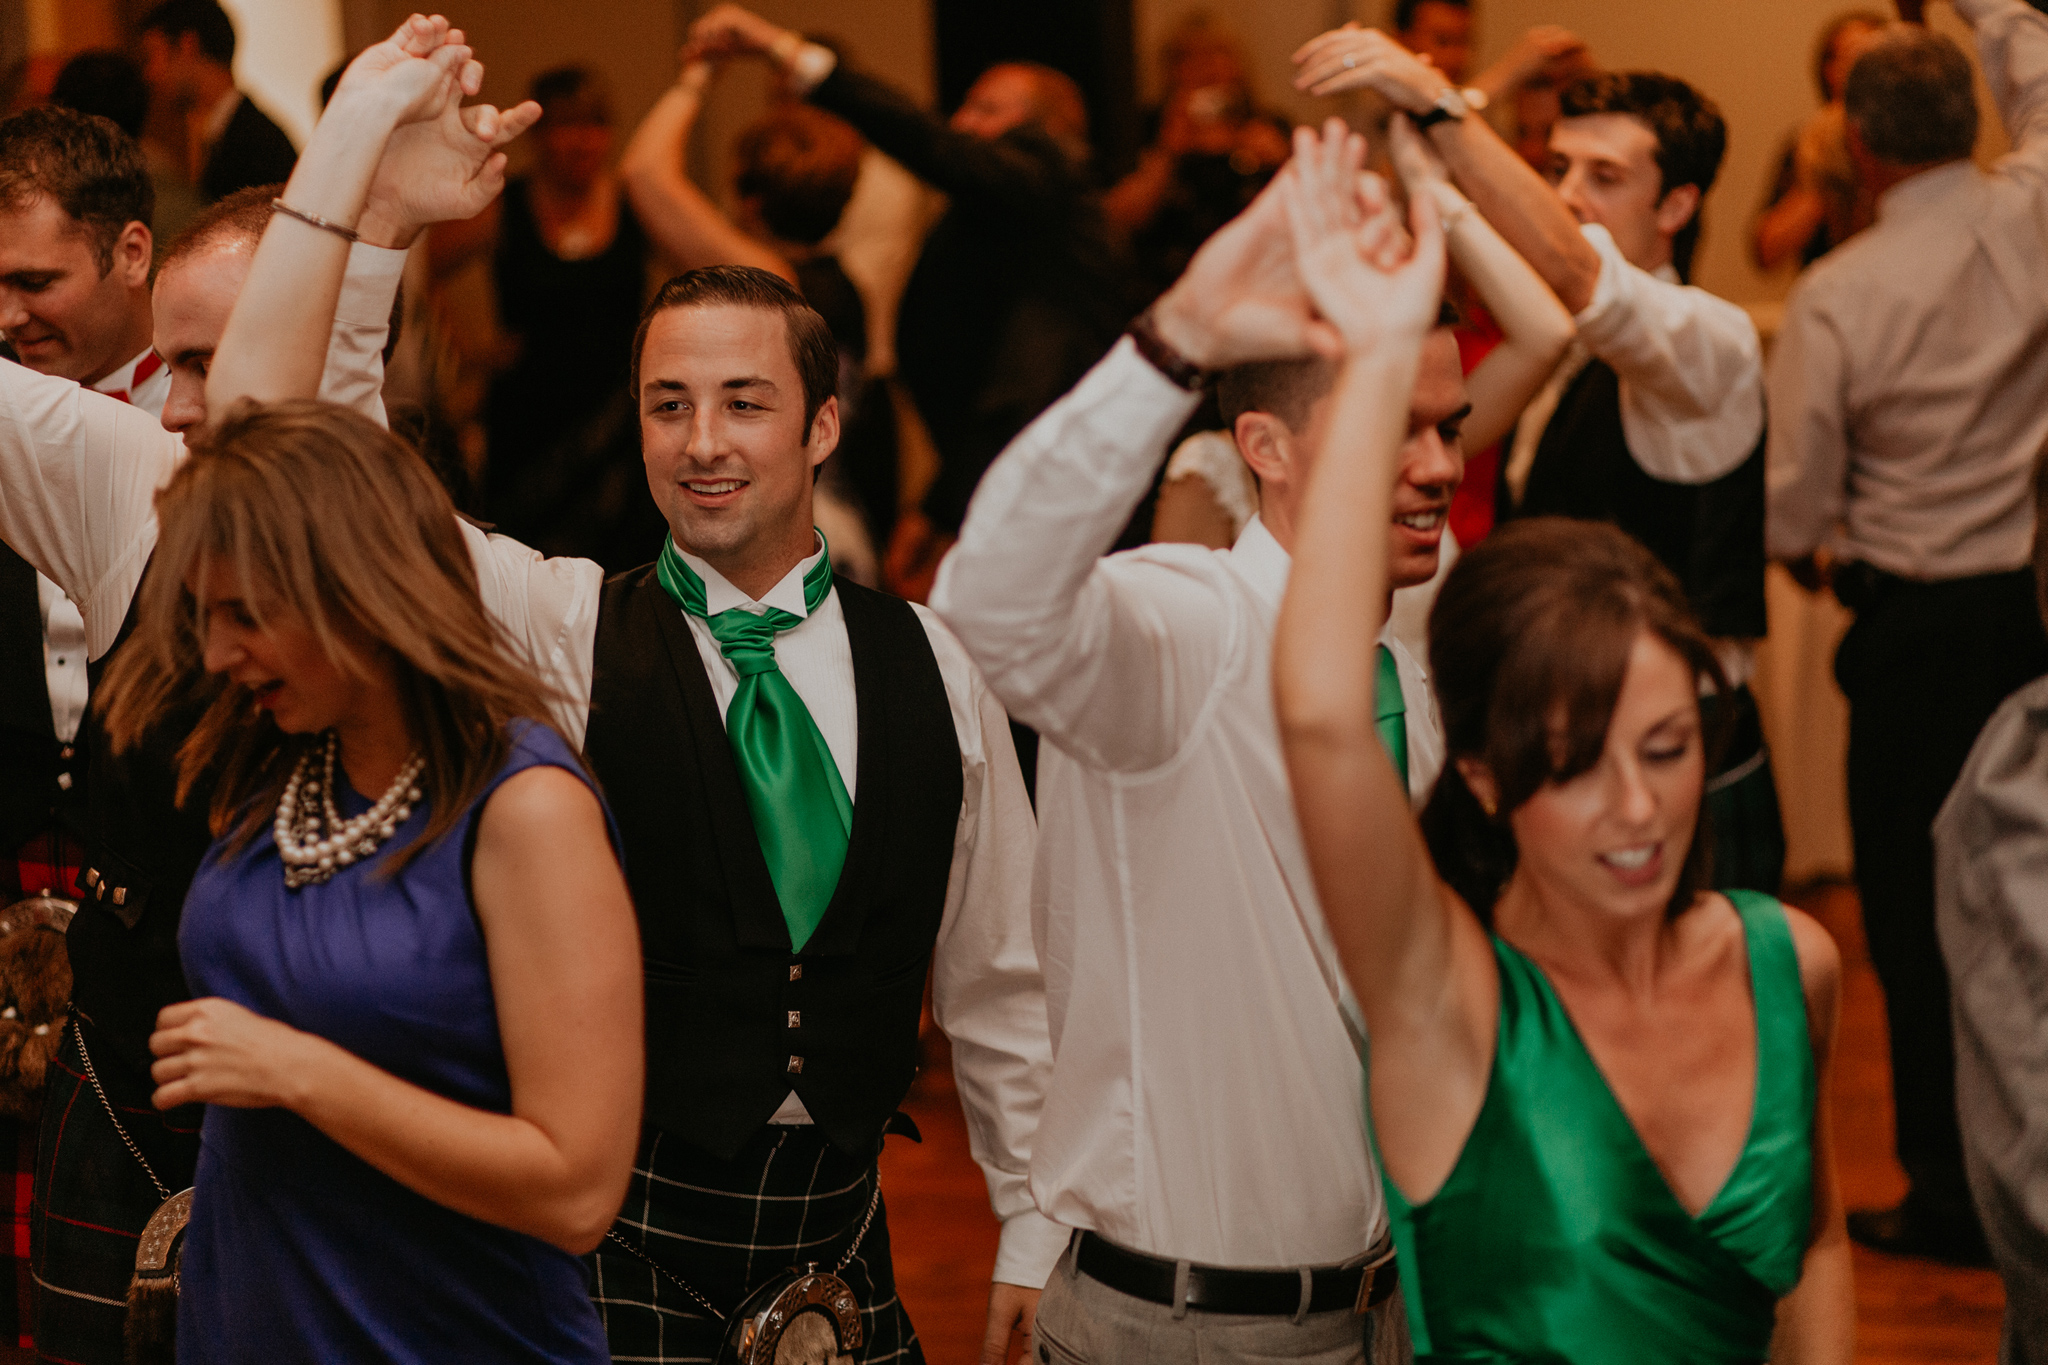 Guests dance at Scottish wedding reception